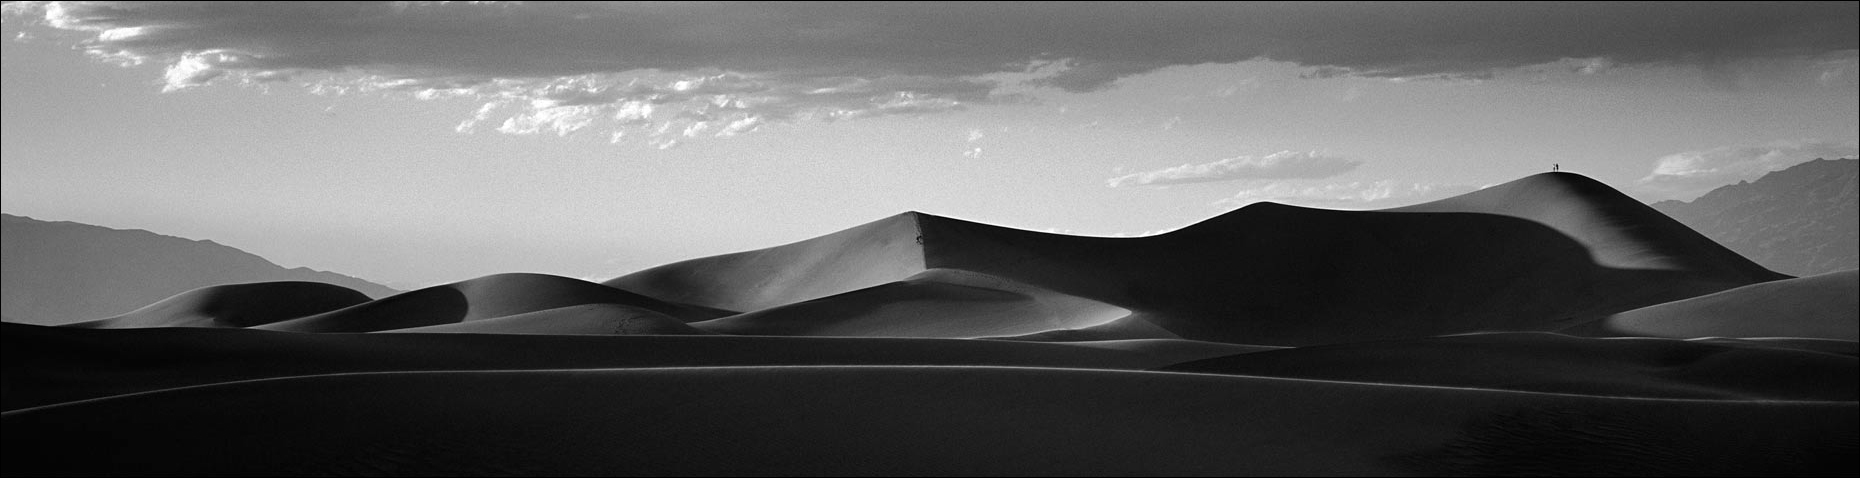 death-valley-sand dunes ©Paul Hampton Photographer Glasgow